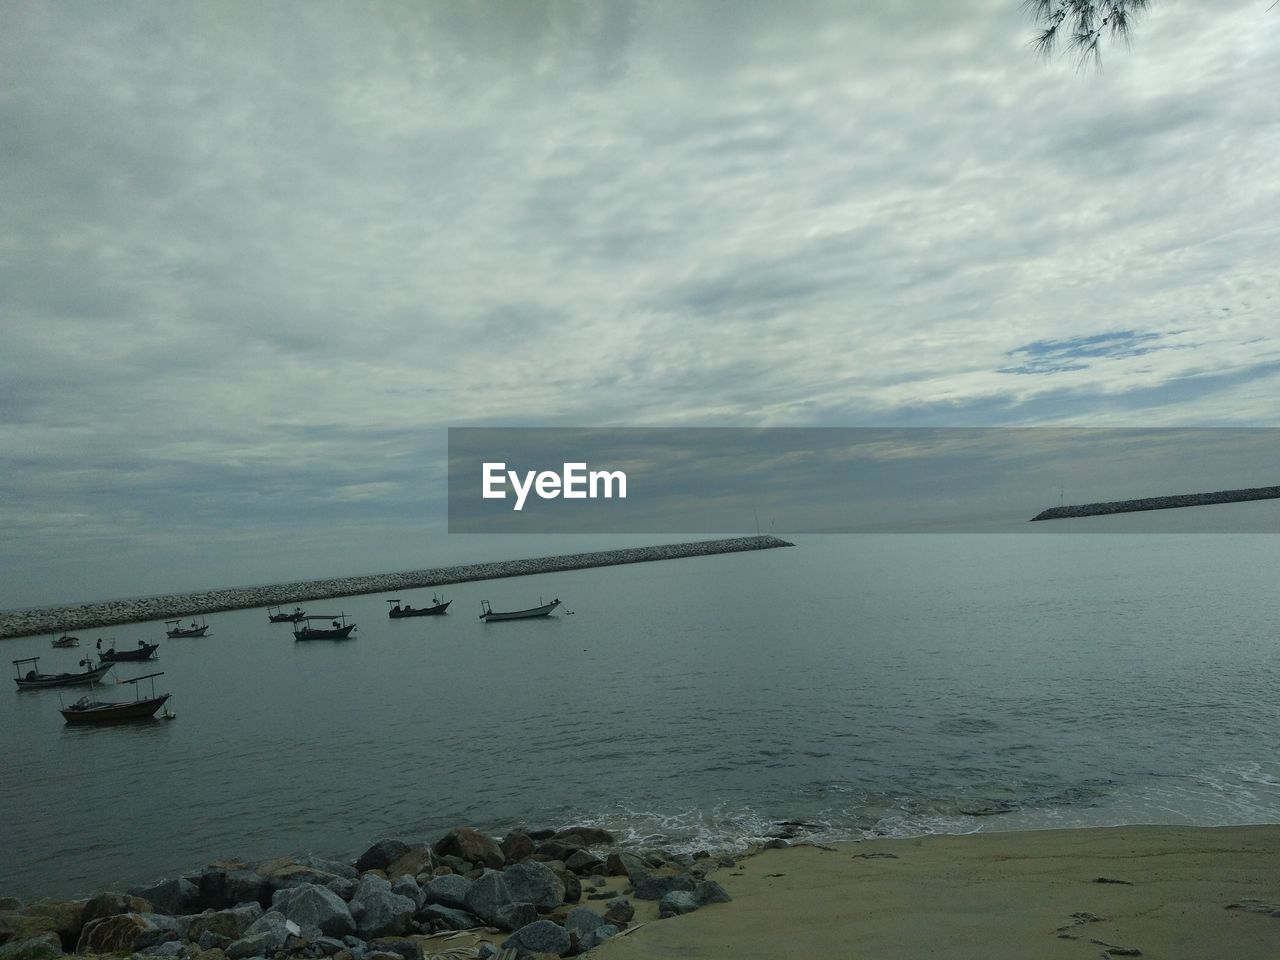 water, sky, cloud - sky, sea, beauty in nature, nature, scenics - nature, tranquil scene, tranquility, rock, beach, no people, day, land, horizon over water, rock - object, horizon, solid, outdoors, groyne